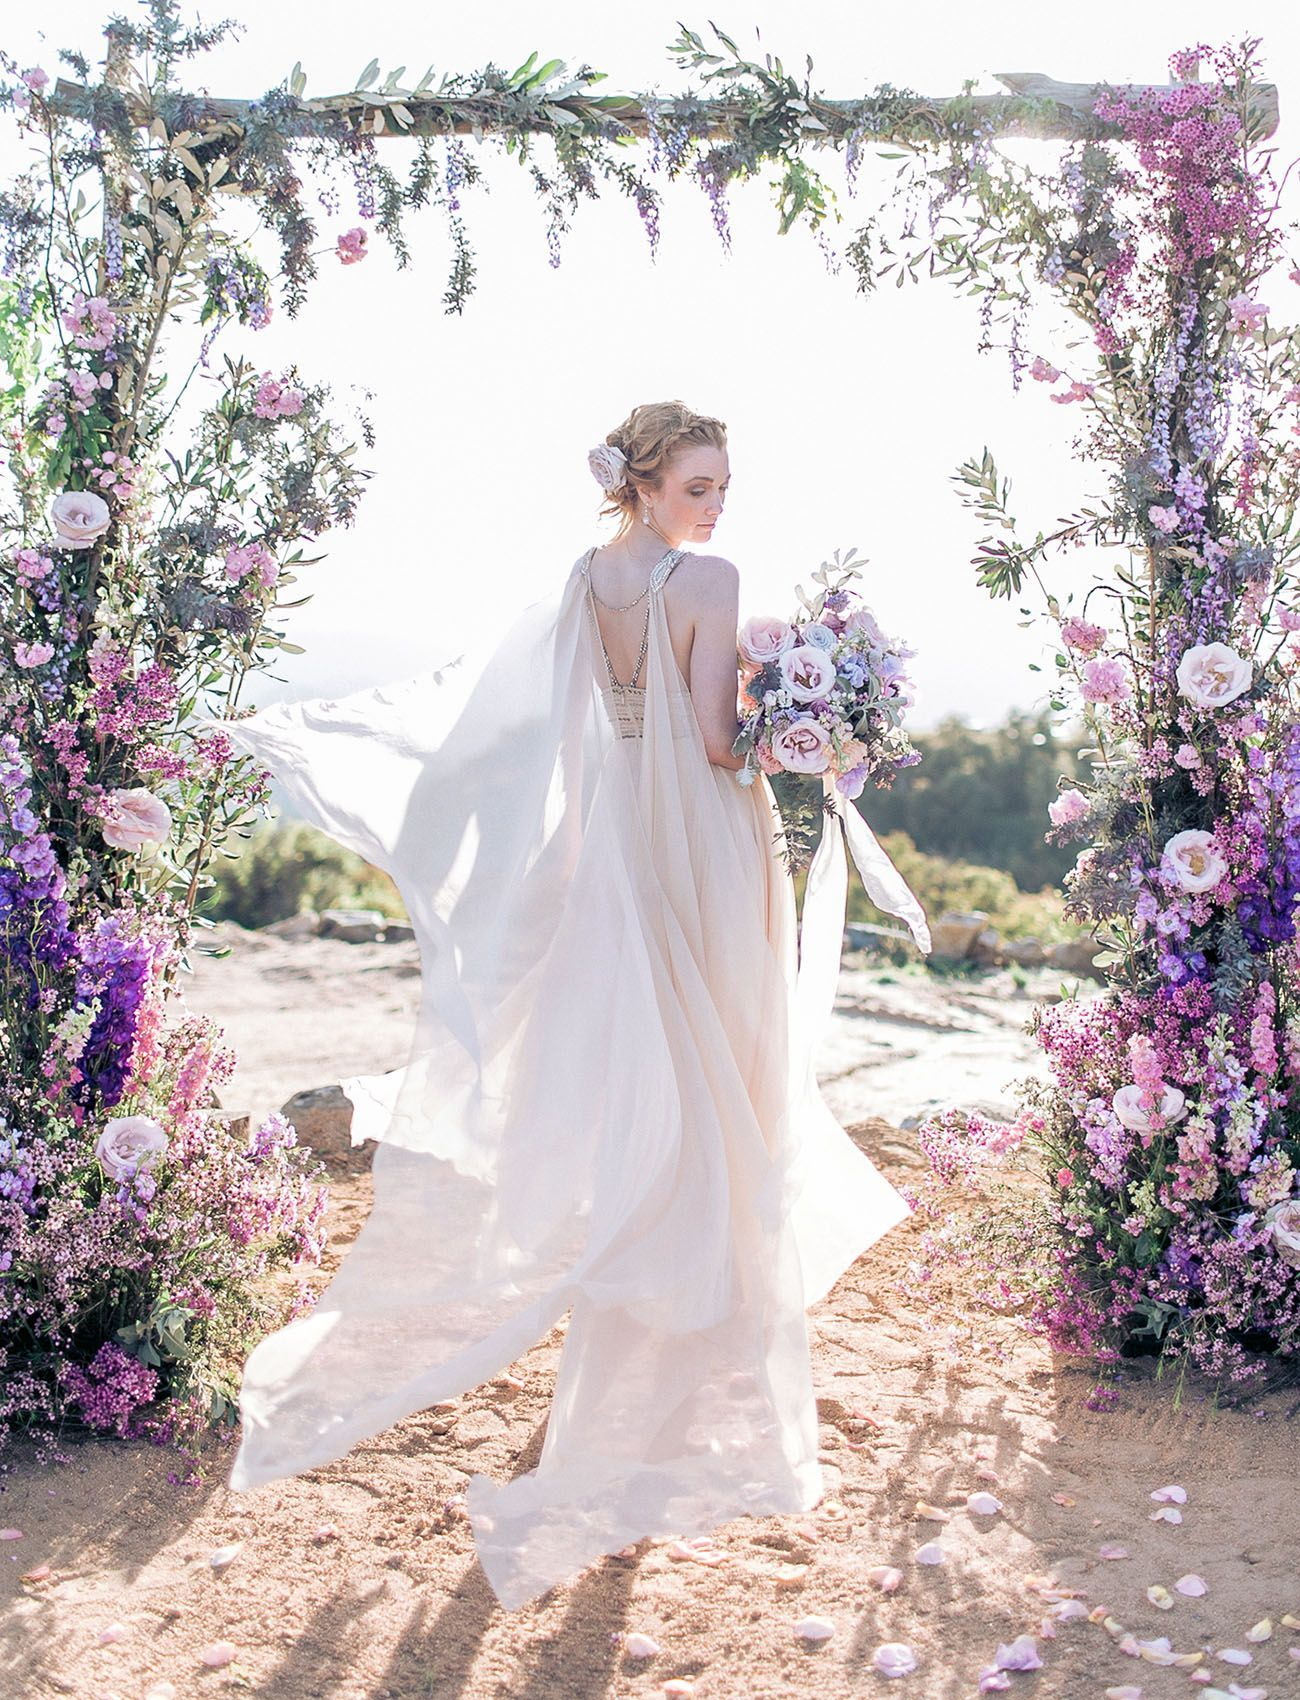 Cape wedding dress our floral design from our inspirational art